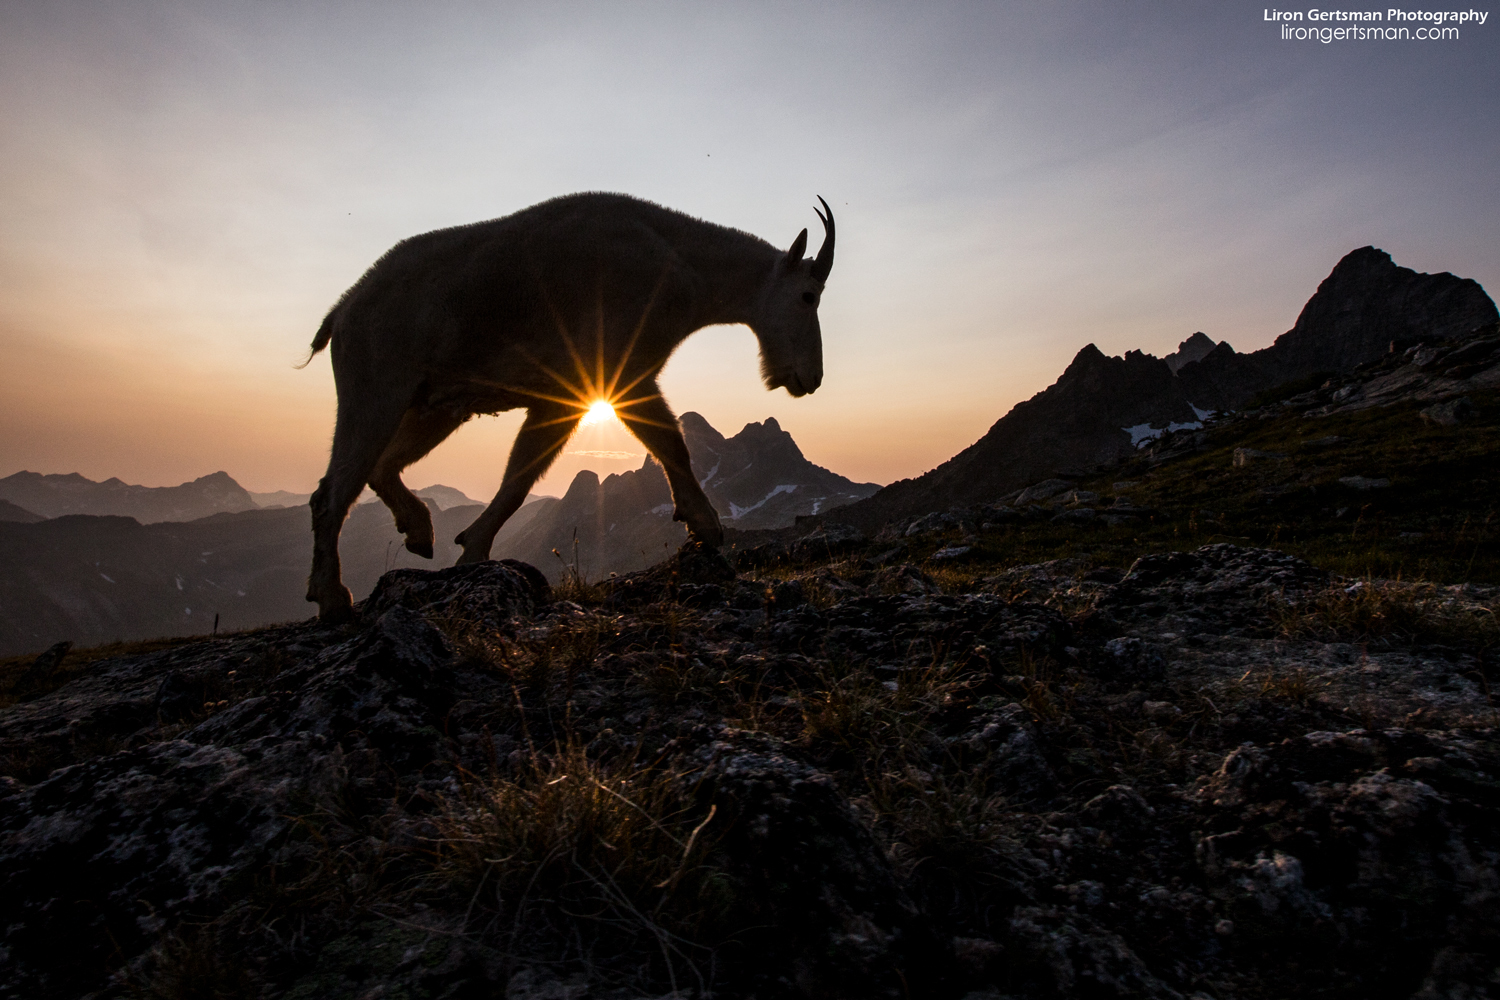 "The sunsets on the mountain were spectacular. I spent some time photographing goat silhouettes against the evening sky and was happy with this shot which features a sun ""starburst""."